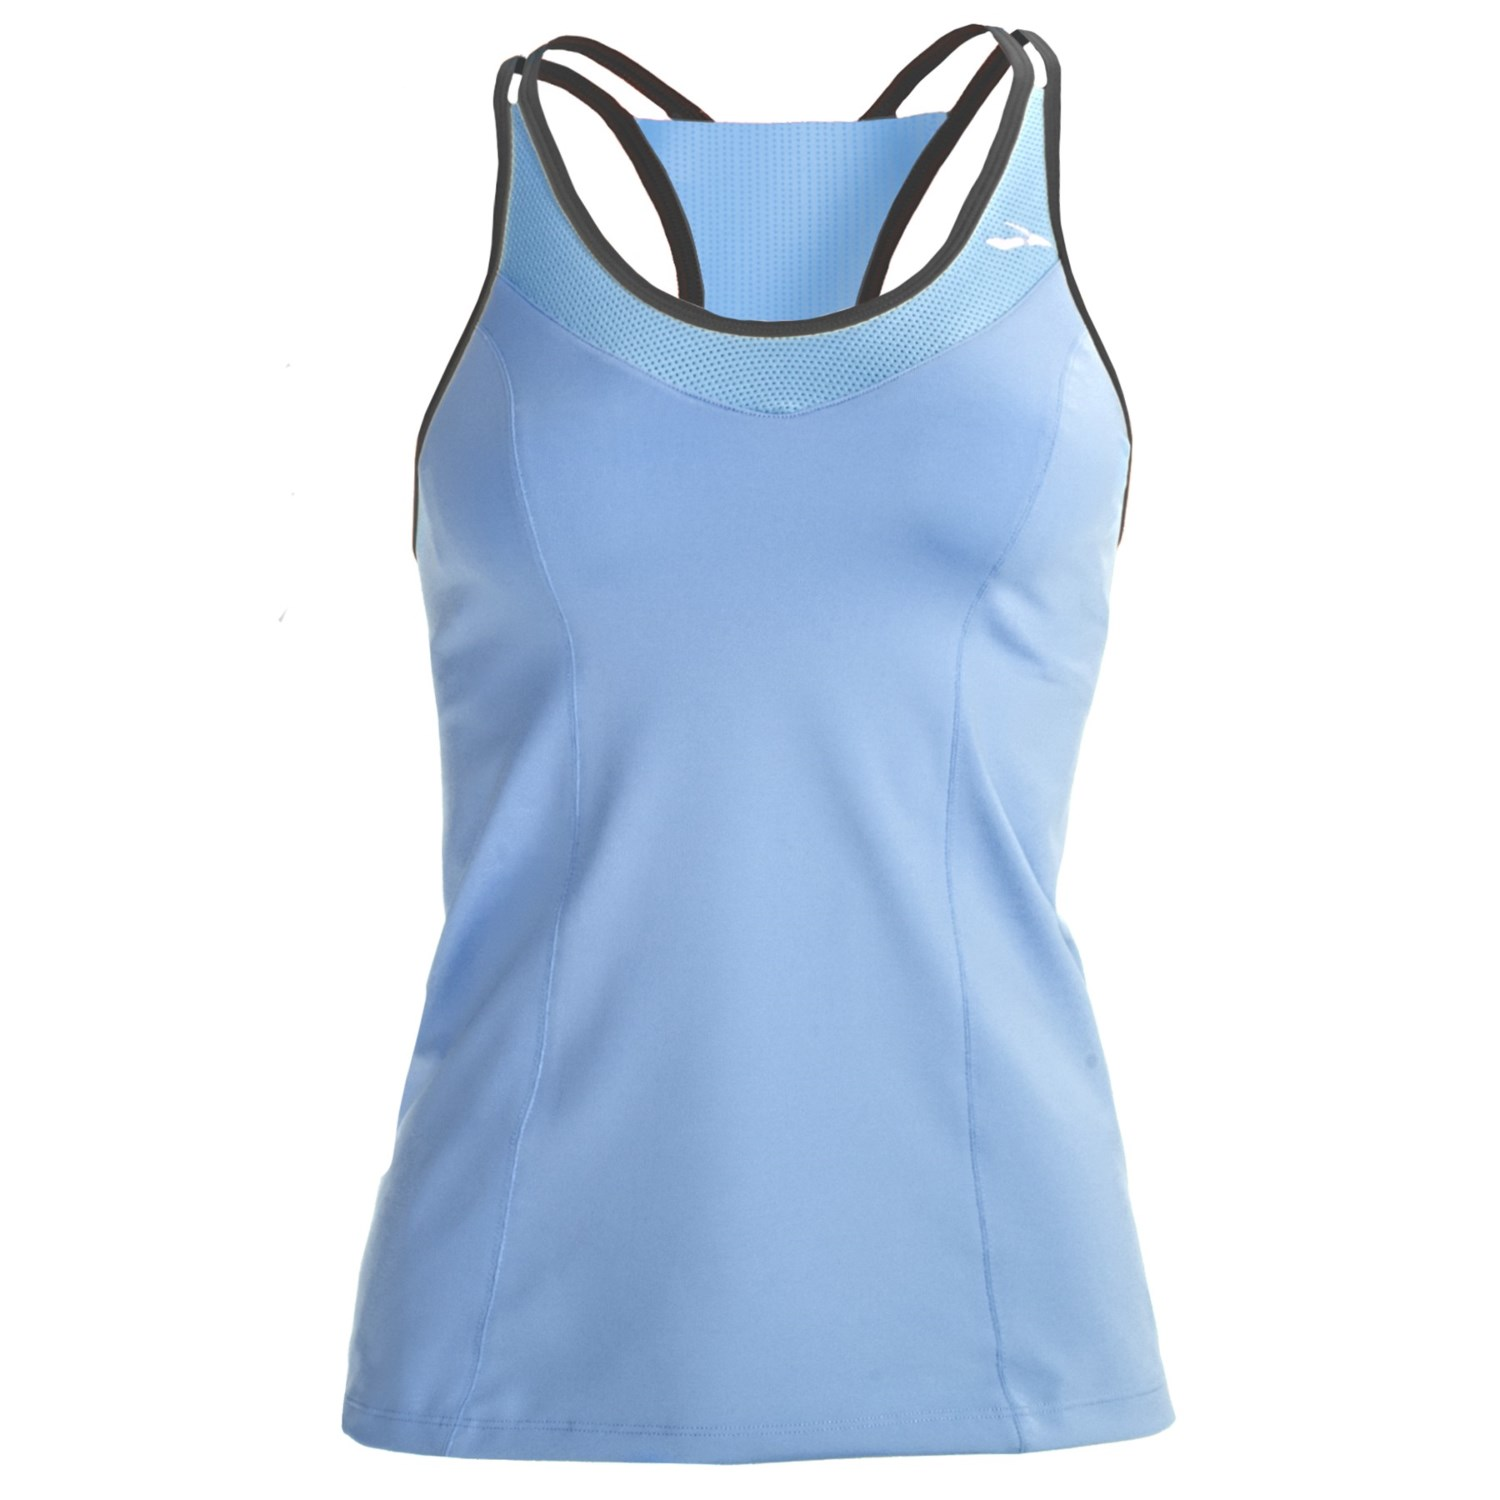 Brooks epiphany ii support tank top built in high impact for Shirts with built in sports bra